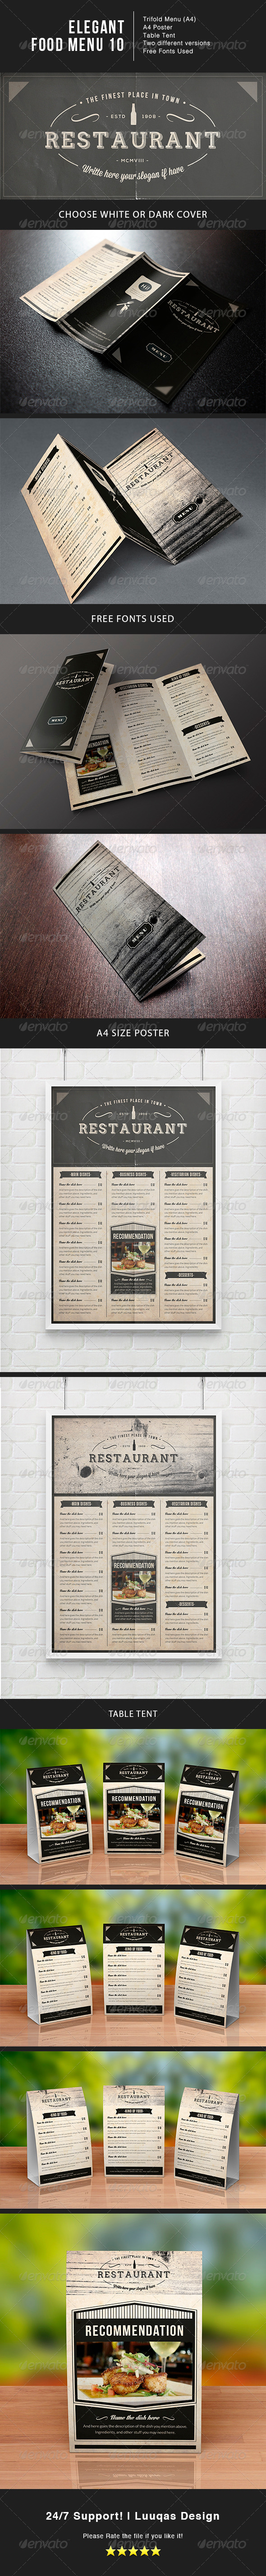 GraphicRiver Elegant Food Menu 10 7593439